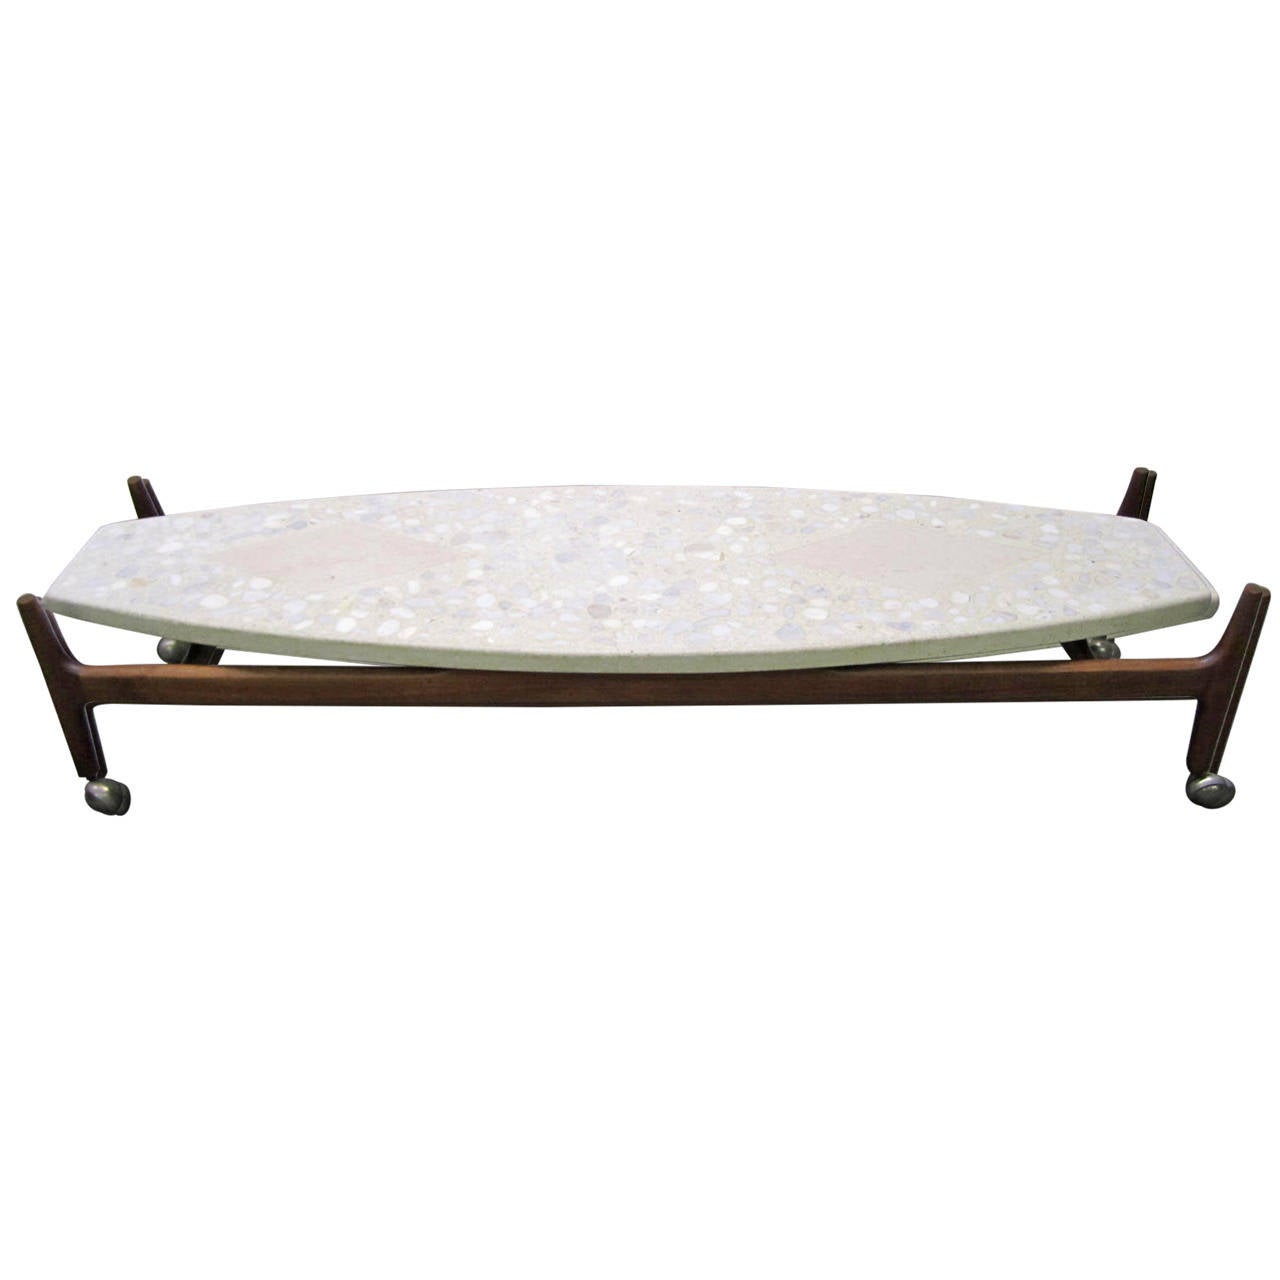 Harvey Probber Coffee Table w/ Terrazzo & Travertine Top on Walnut Base